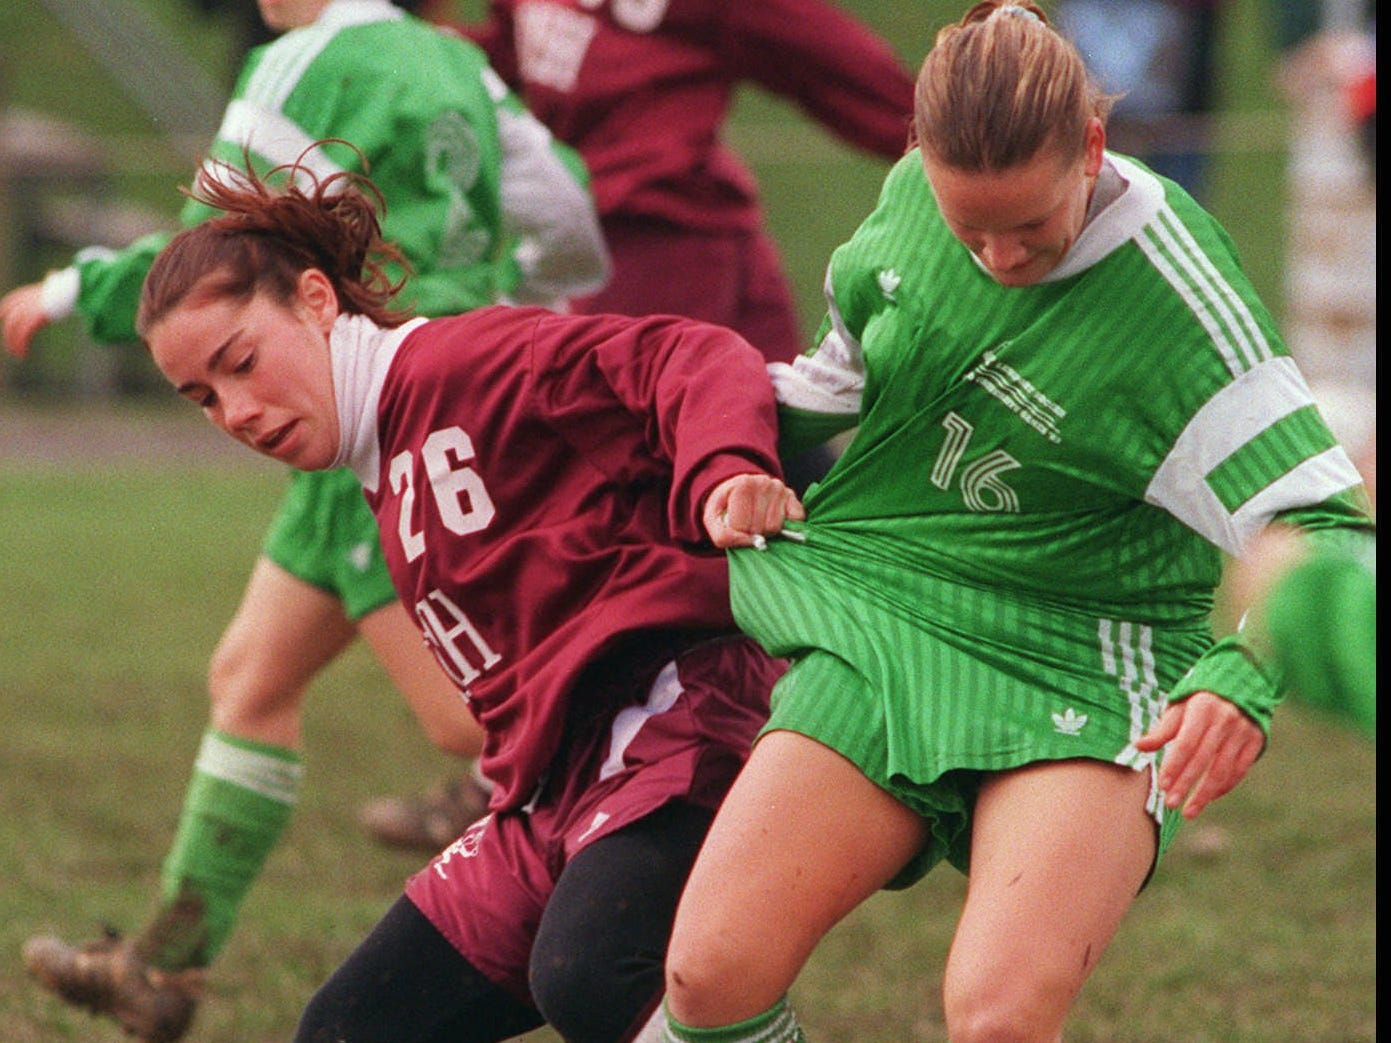 Jessica Parmalee, left, of Aquinas battles Christi Martell of Lewiston-Porter for the ball during a state playoff game on Nov. 9, 1996.